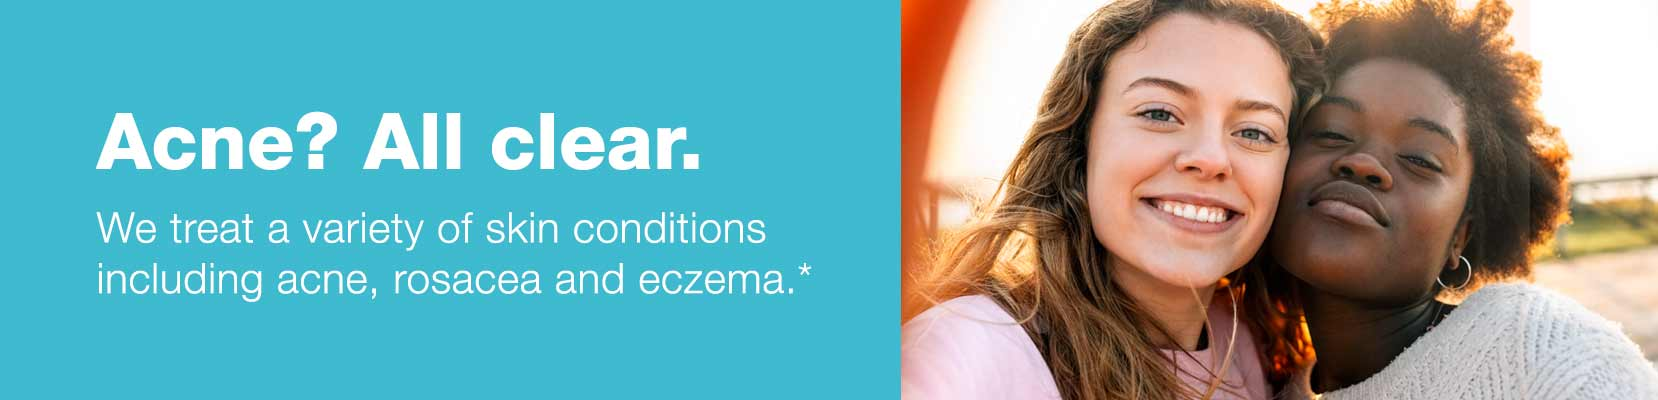 Acne? All clear.